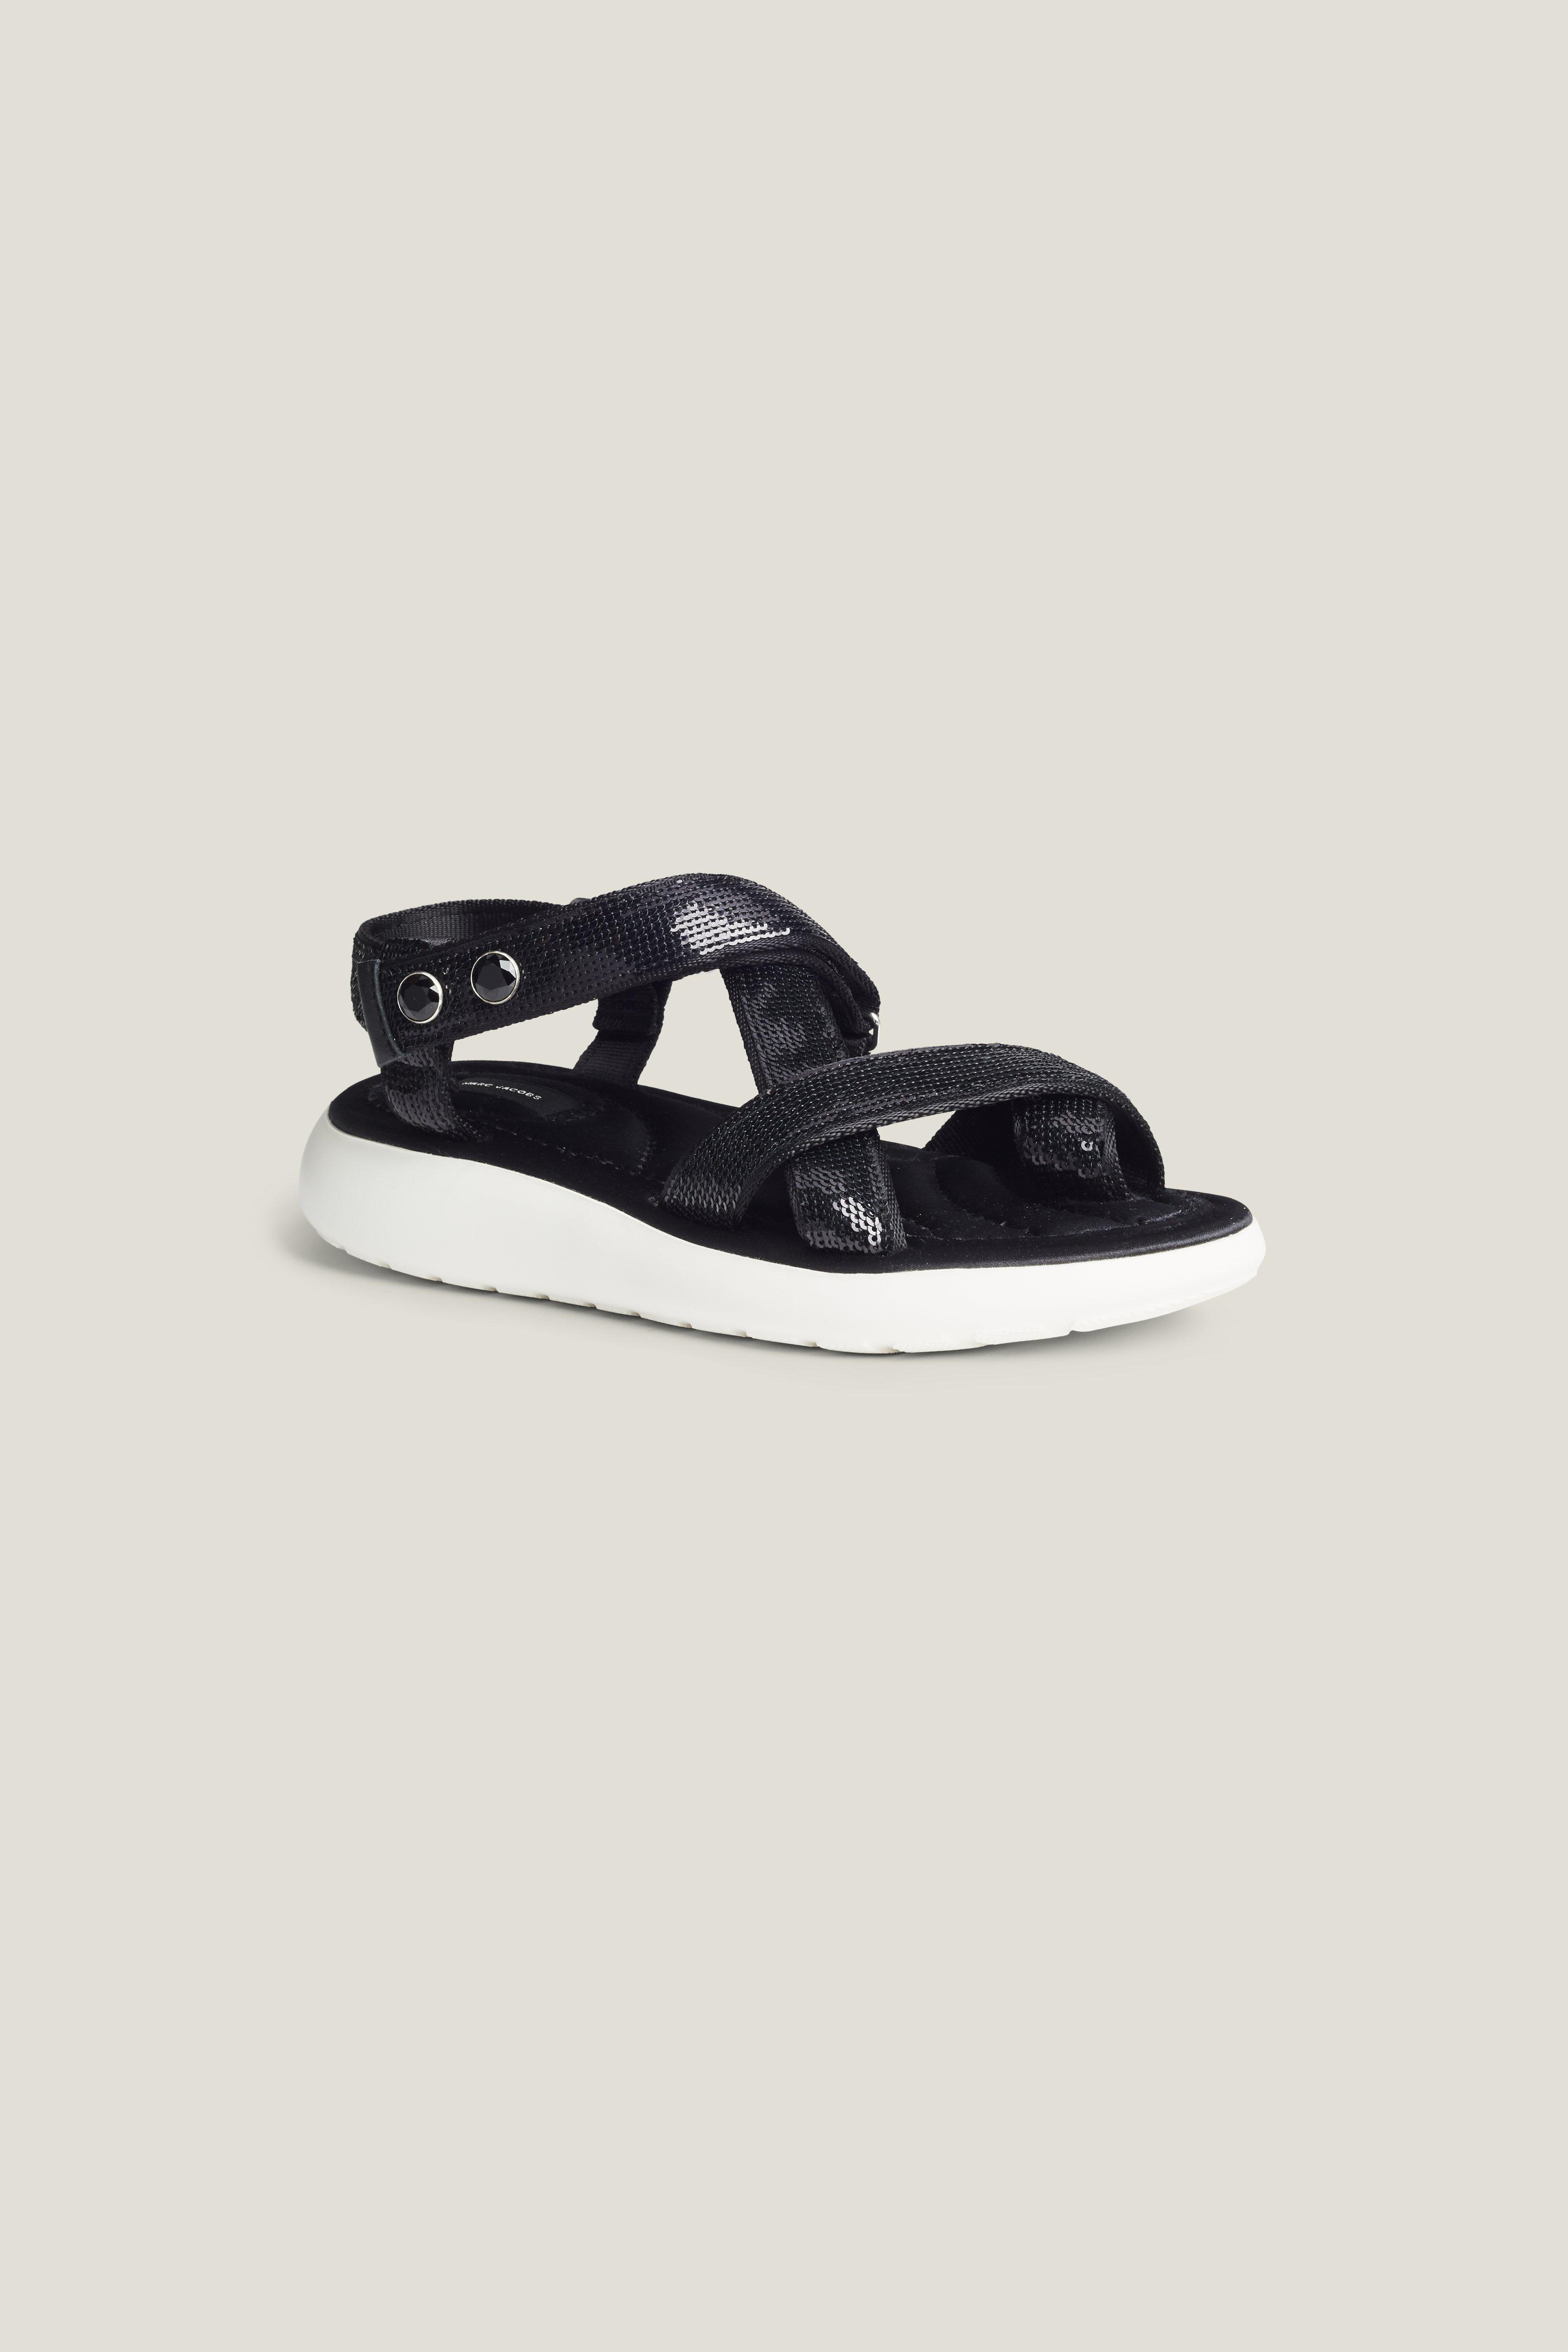 Marc Jacobs Comet Sport Sandal In Black